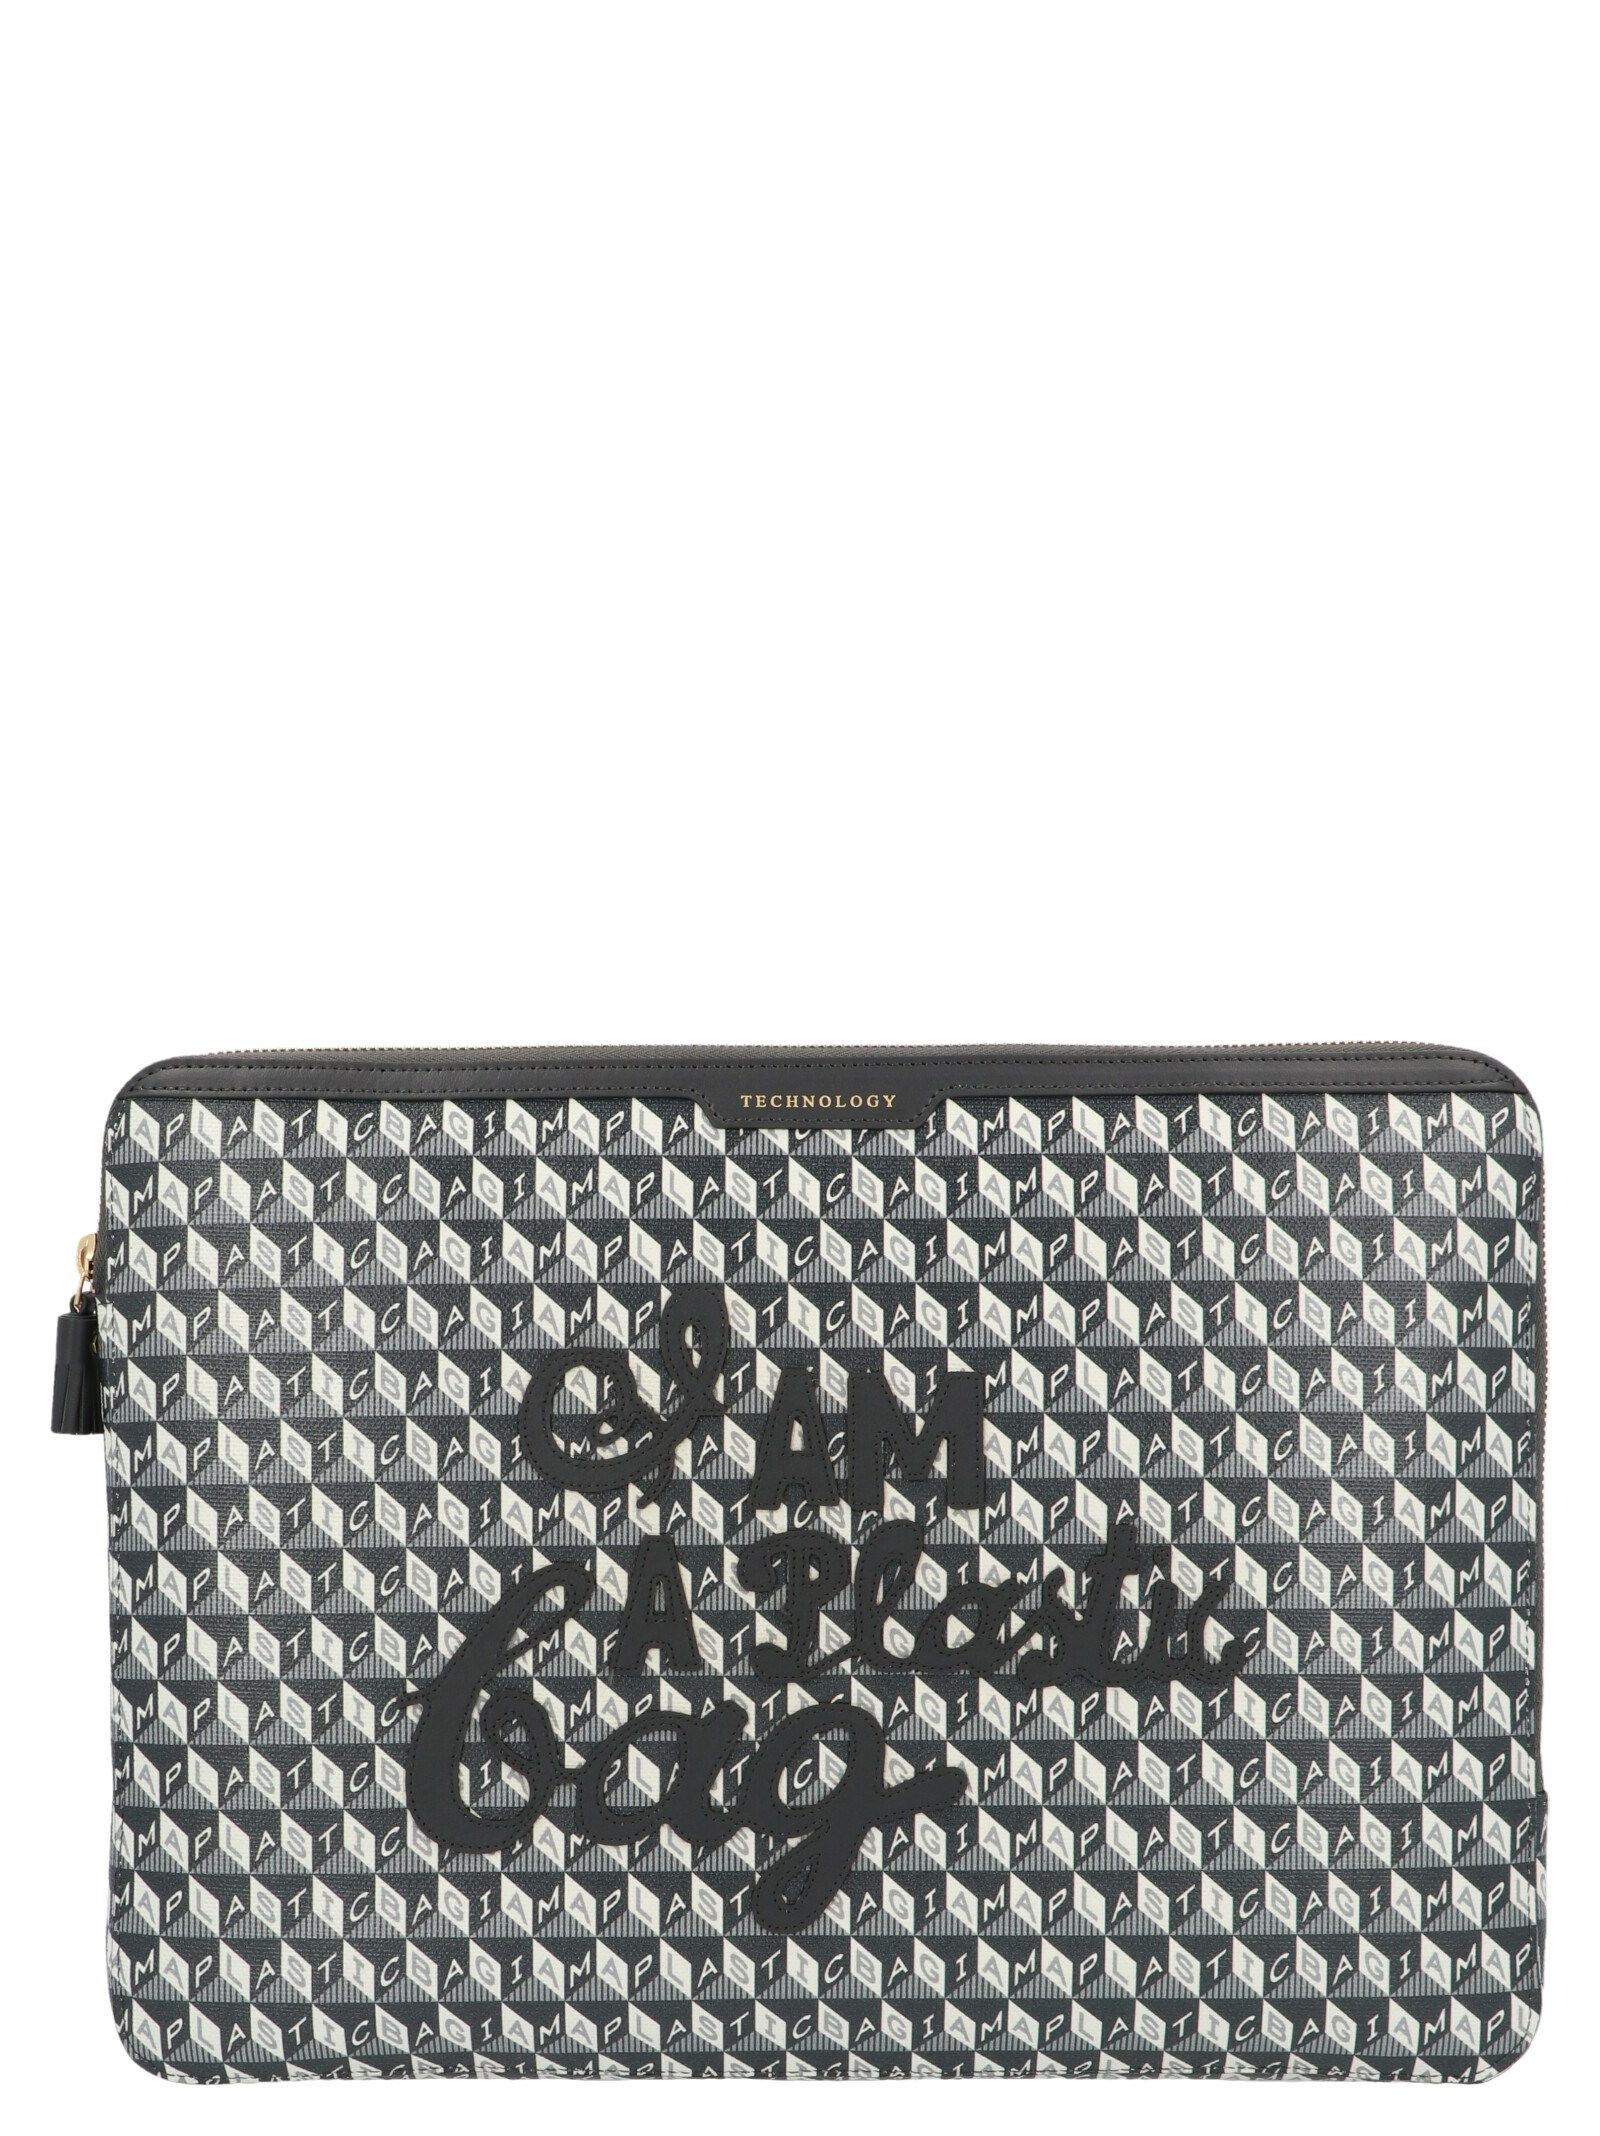 Anya Hindmarch ANYA HINDMARCH WOMEN'S 156448CHARCOAL MULTICOLOR OTHER MATERIALS POUCH